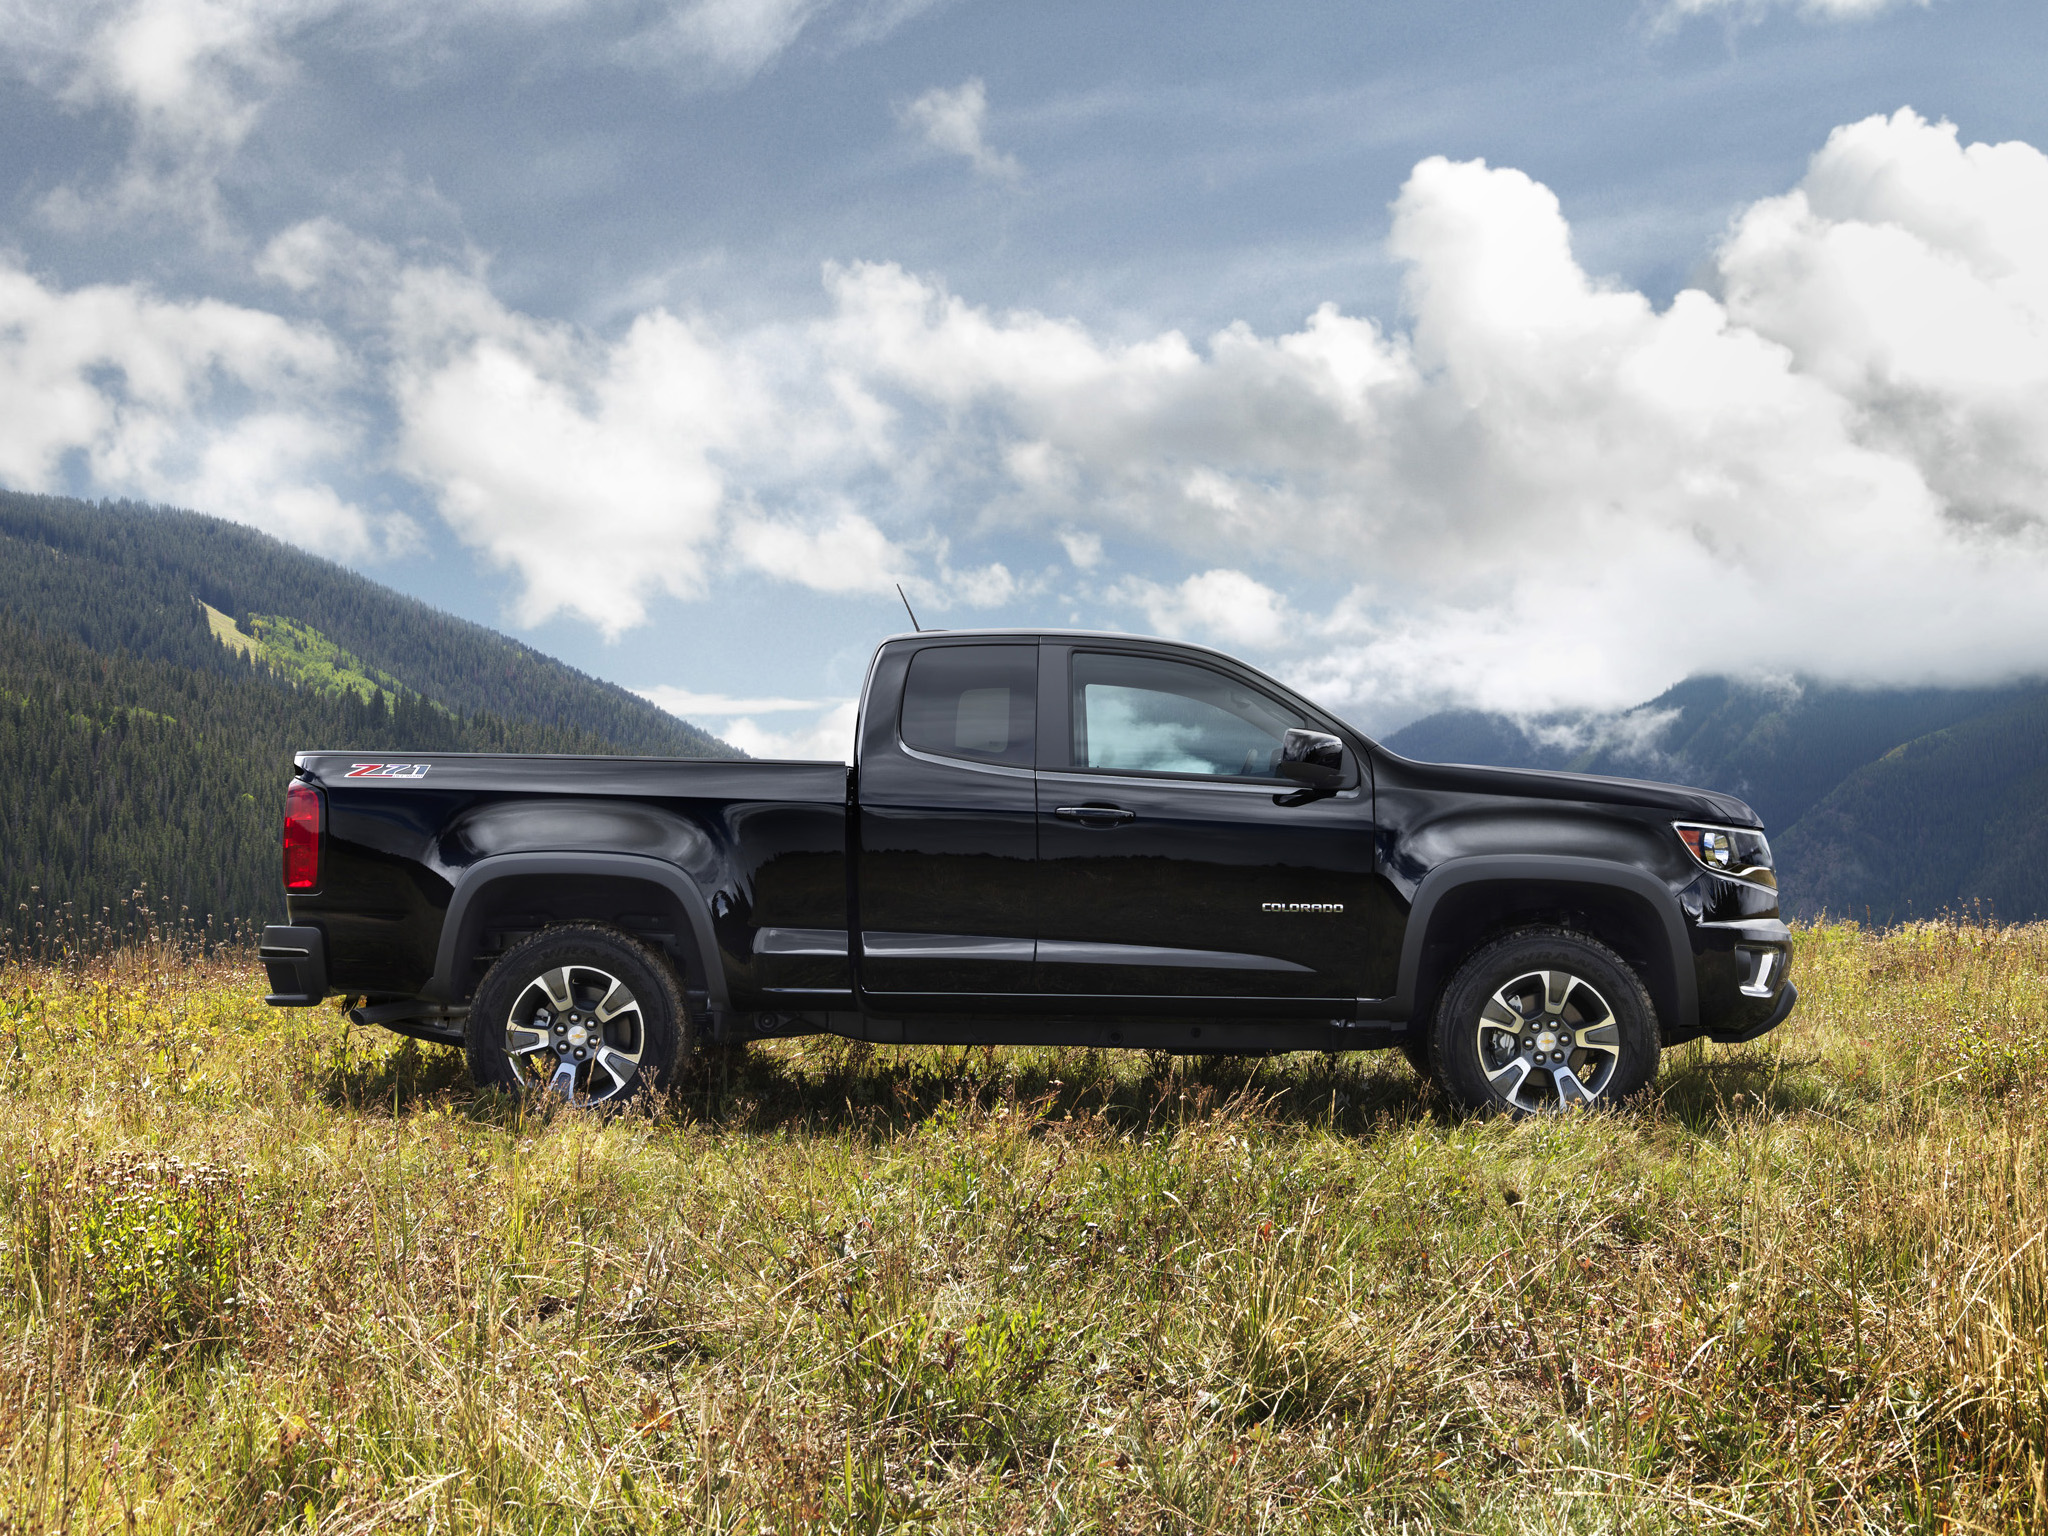 2014 chevrolet colorado z71 extended cab pickup 4x4 g wallpaper 2048x1536 178211 wallpaperup